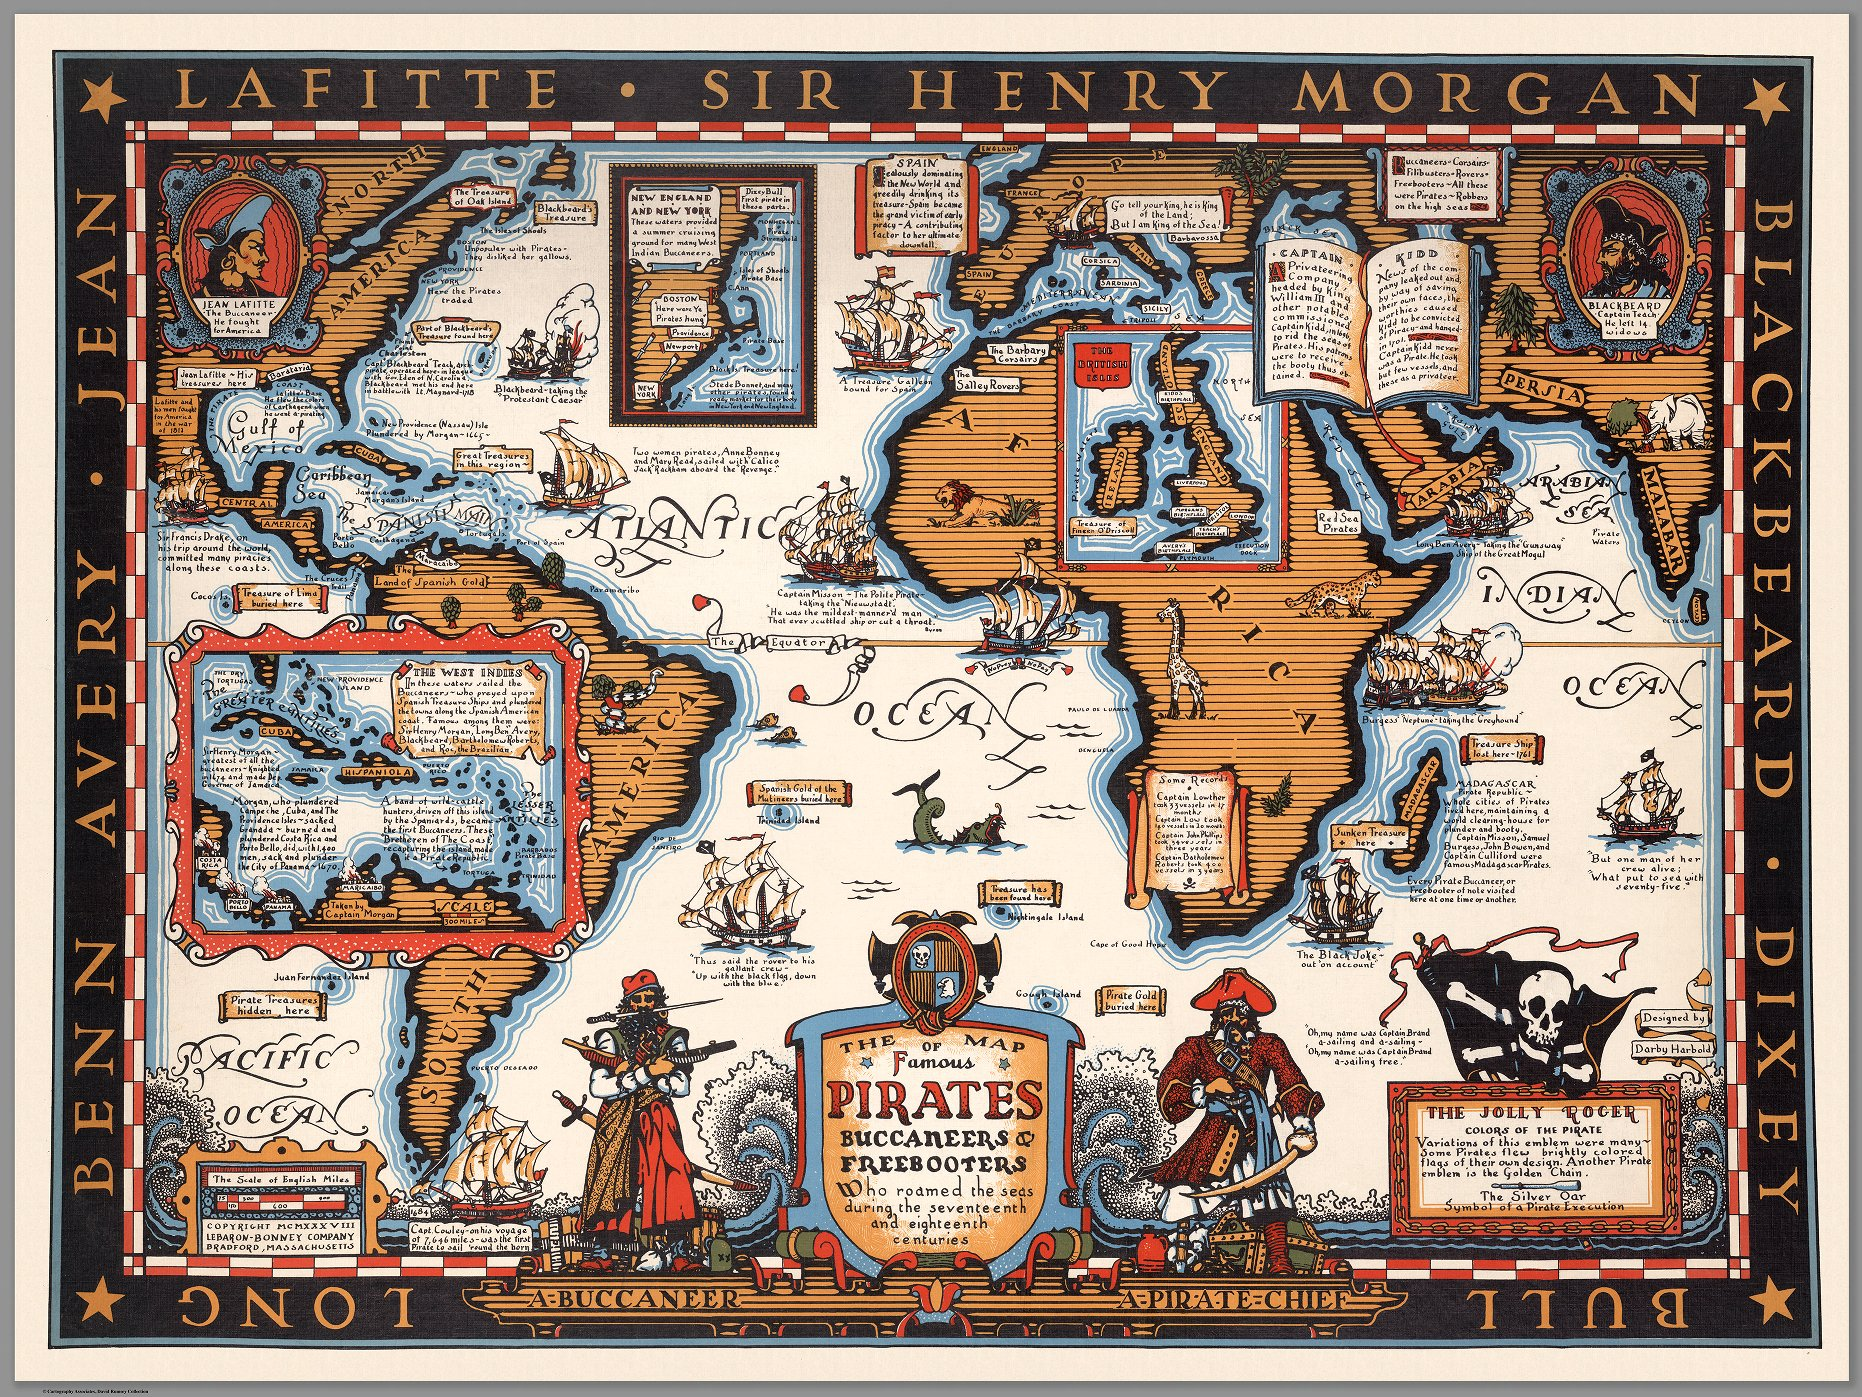 The Map of Famous Pirates, Buccaneers, and Freebooters